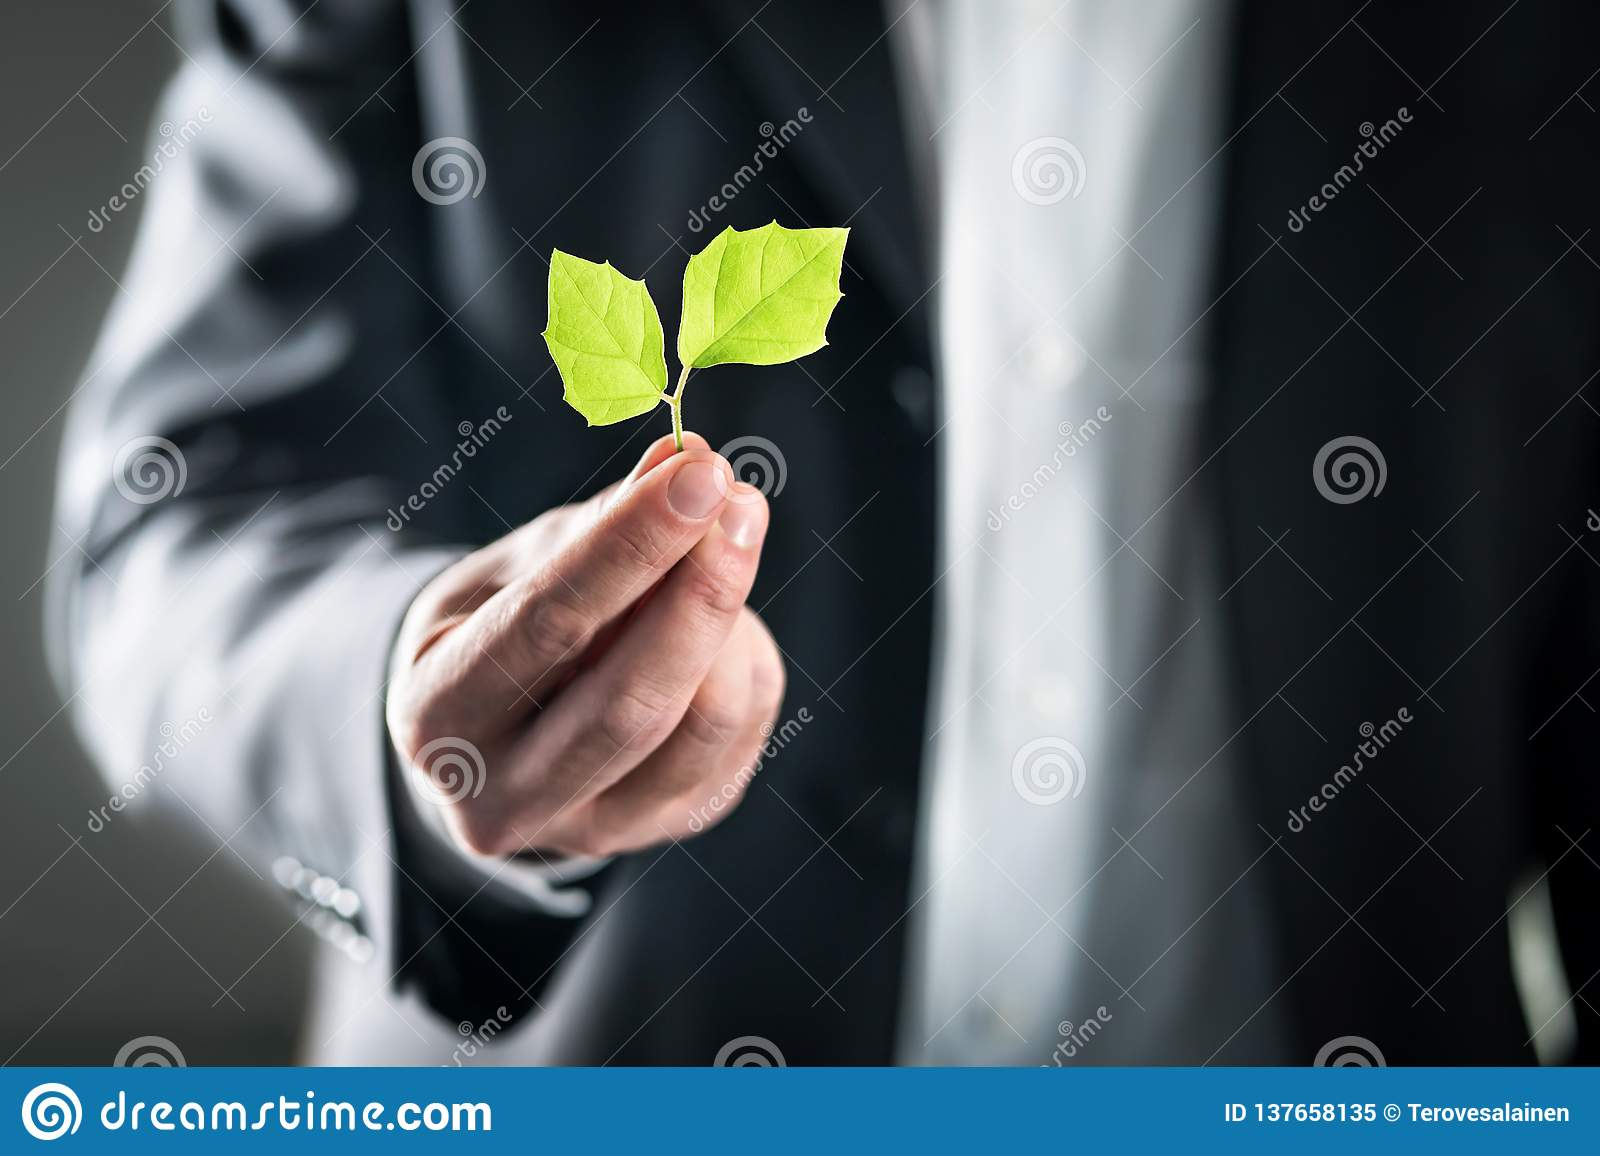 Eco friendly environmental lawyer or business man. Sustainable development, climate change, ecology and carbon footprint concept.